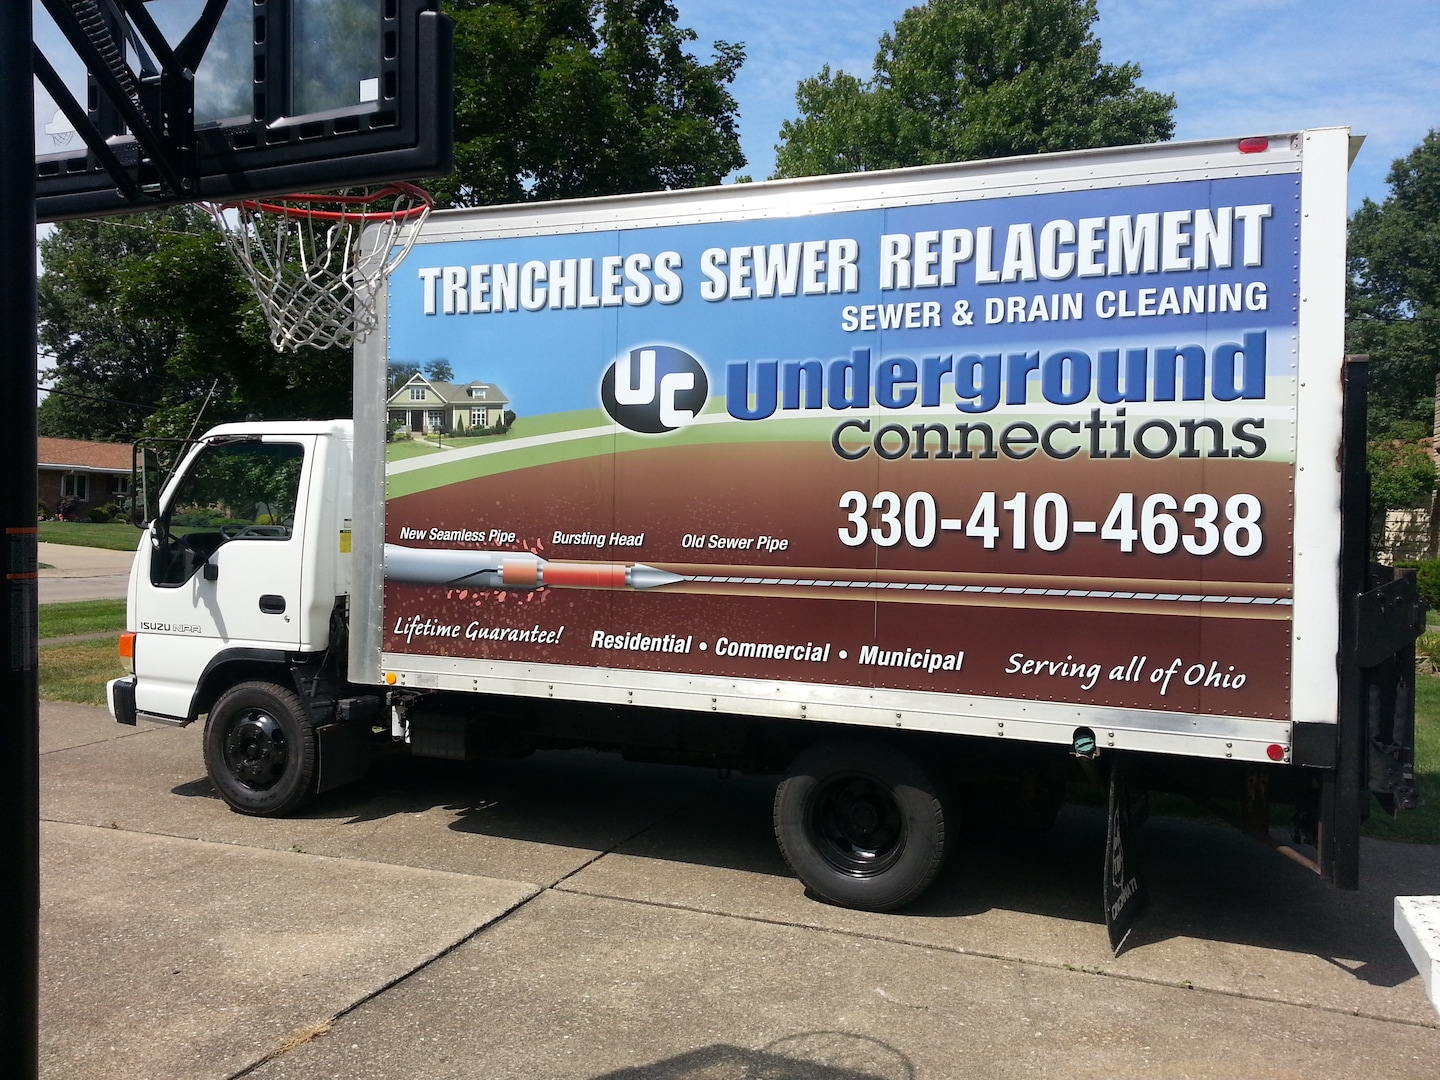 Underground Connections - Trenchless Sewer Repair